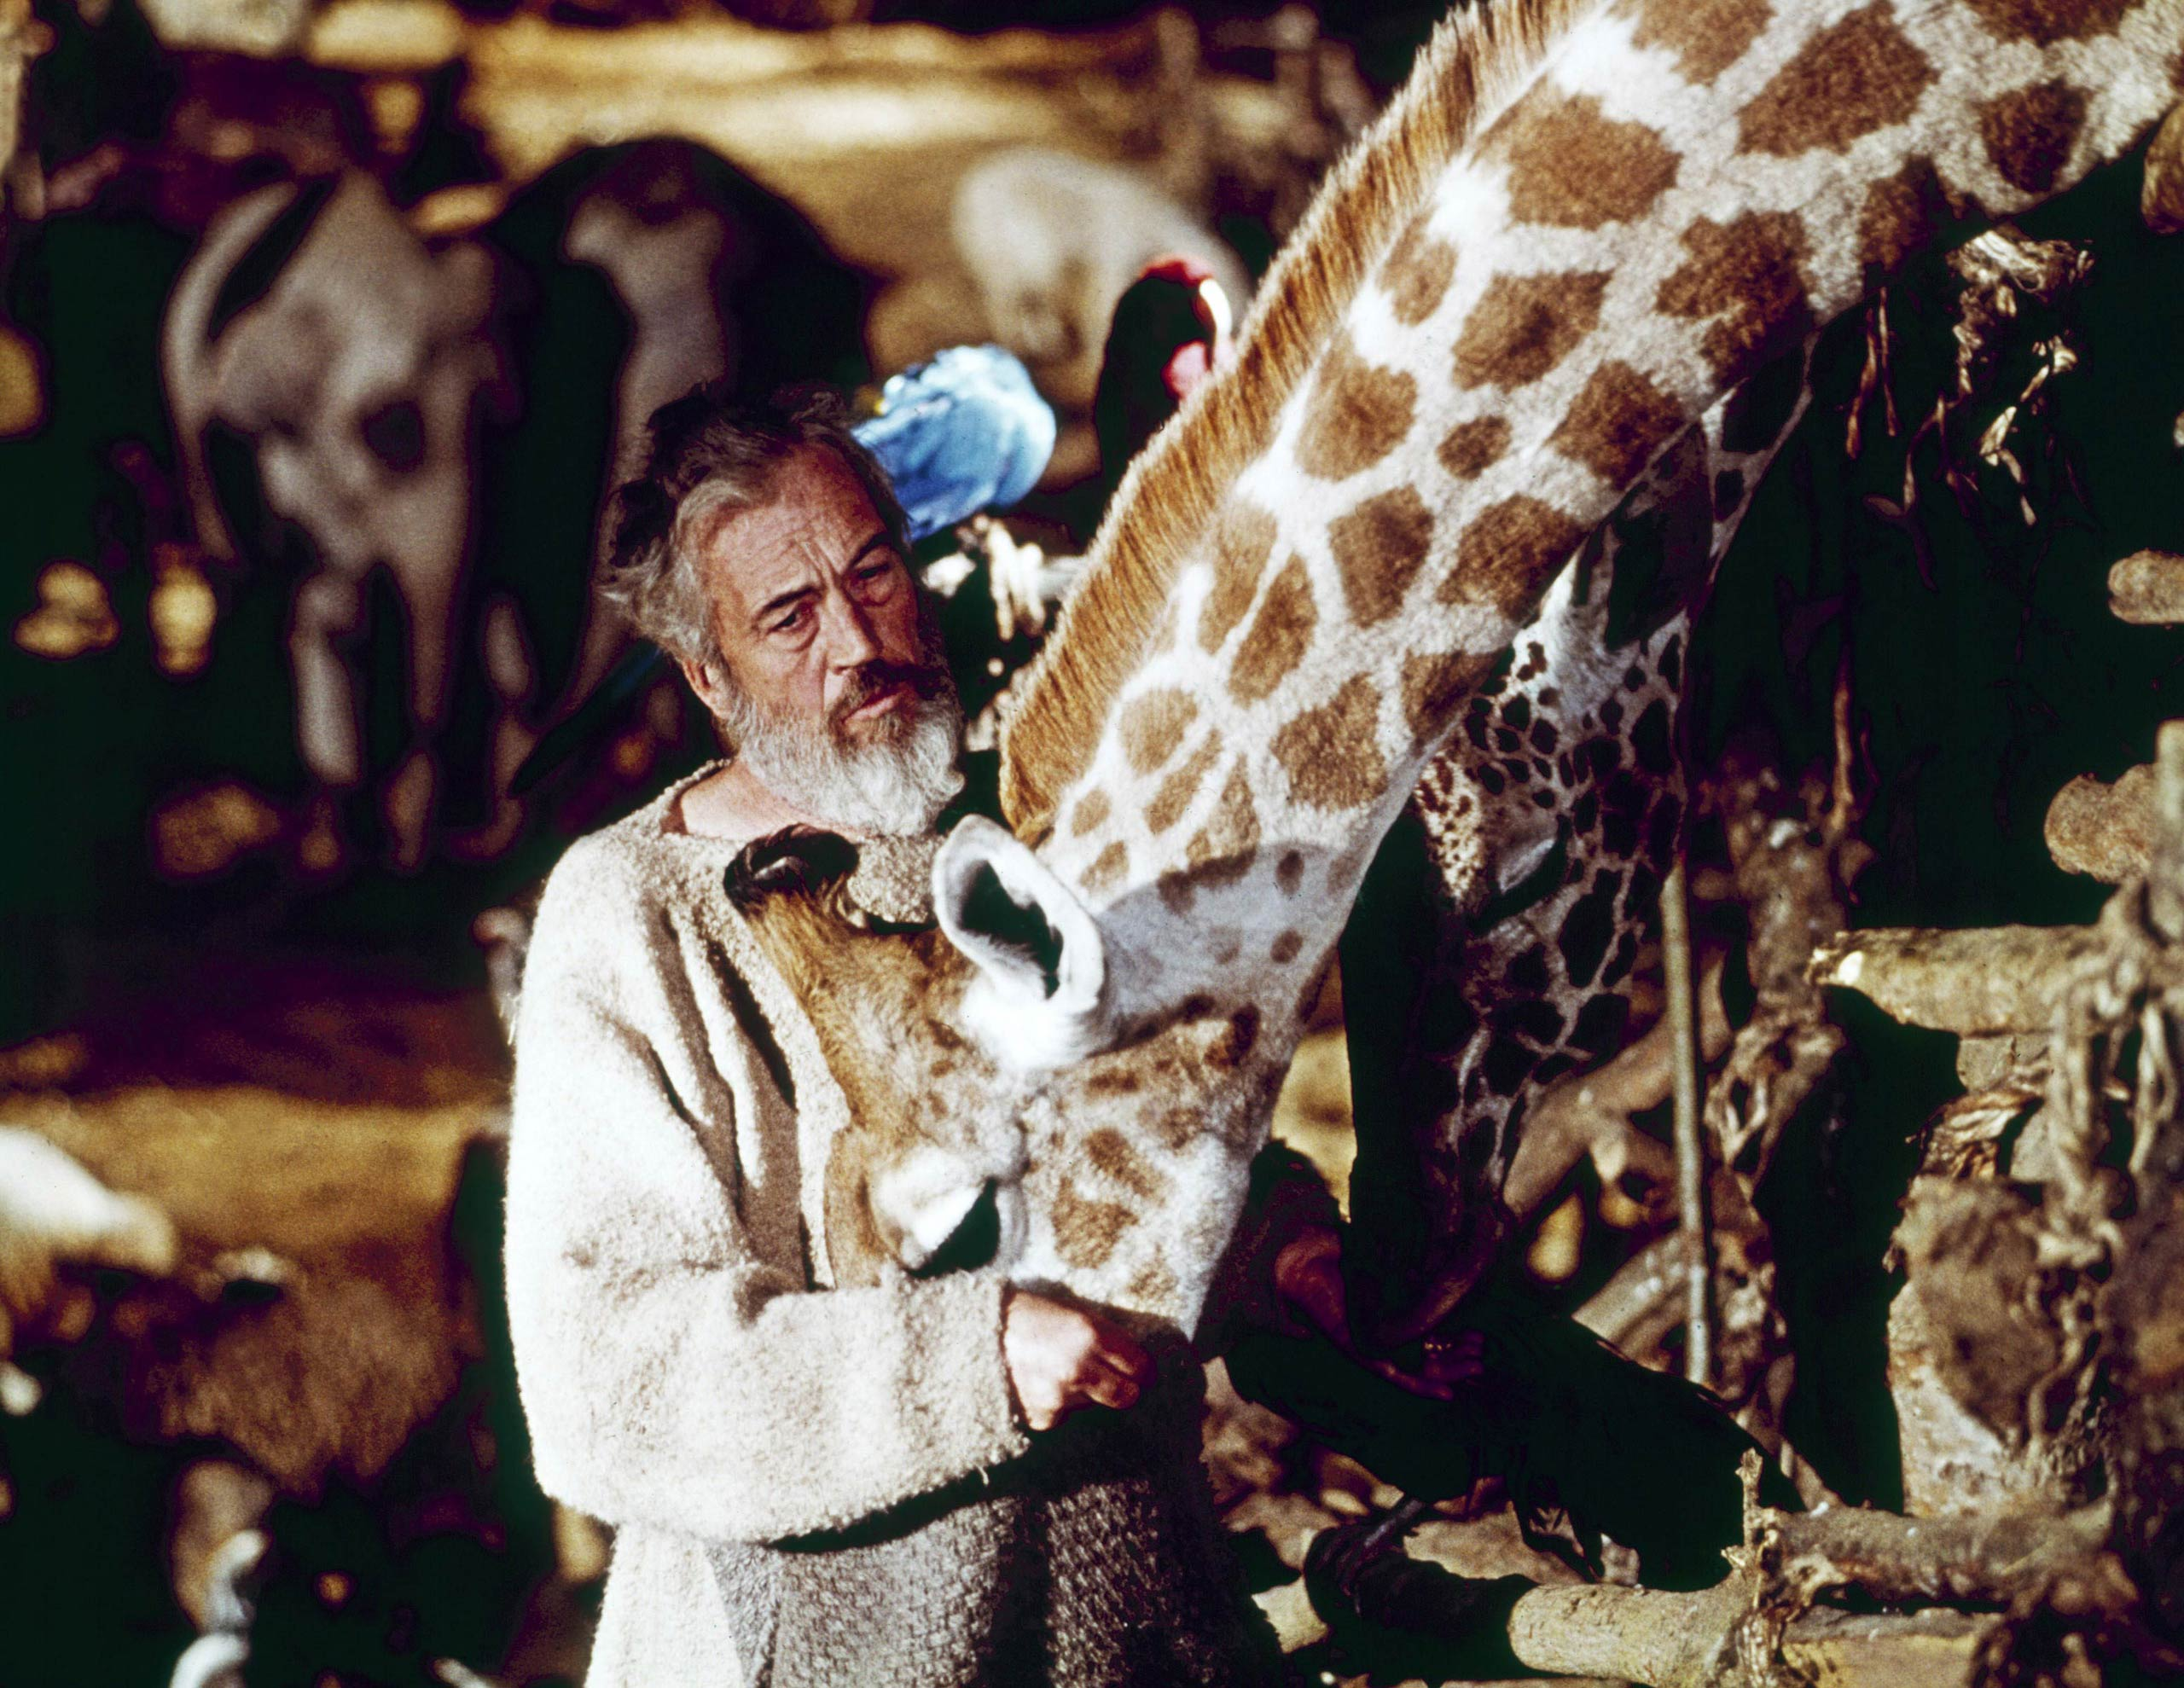 <strong>John Huston, <i>The Bible: In The Beginning</i></strong>                                   When casting a powerful, commanding leading man, iconic director John Huston knew to look no further than himself. Huston appeared in his own film as both Noah and the voice of God, part of a side career in acting that went on to include the downright devilish villain in Chinatown.